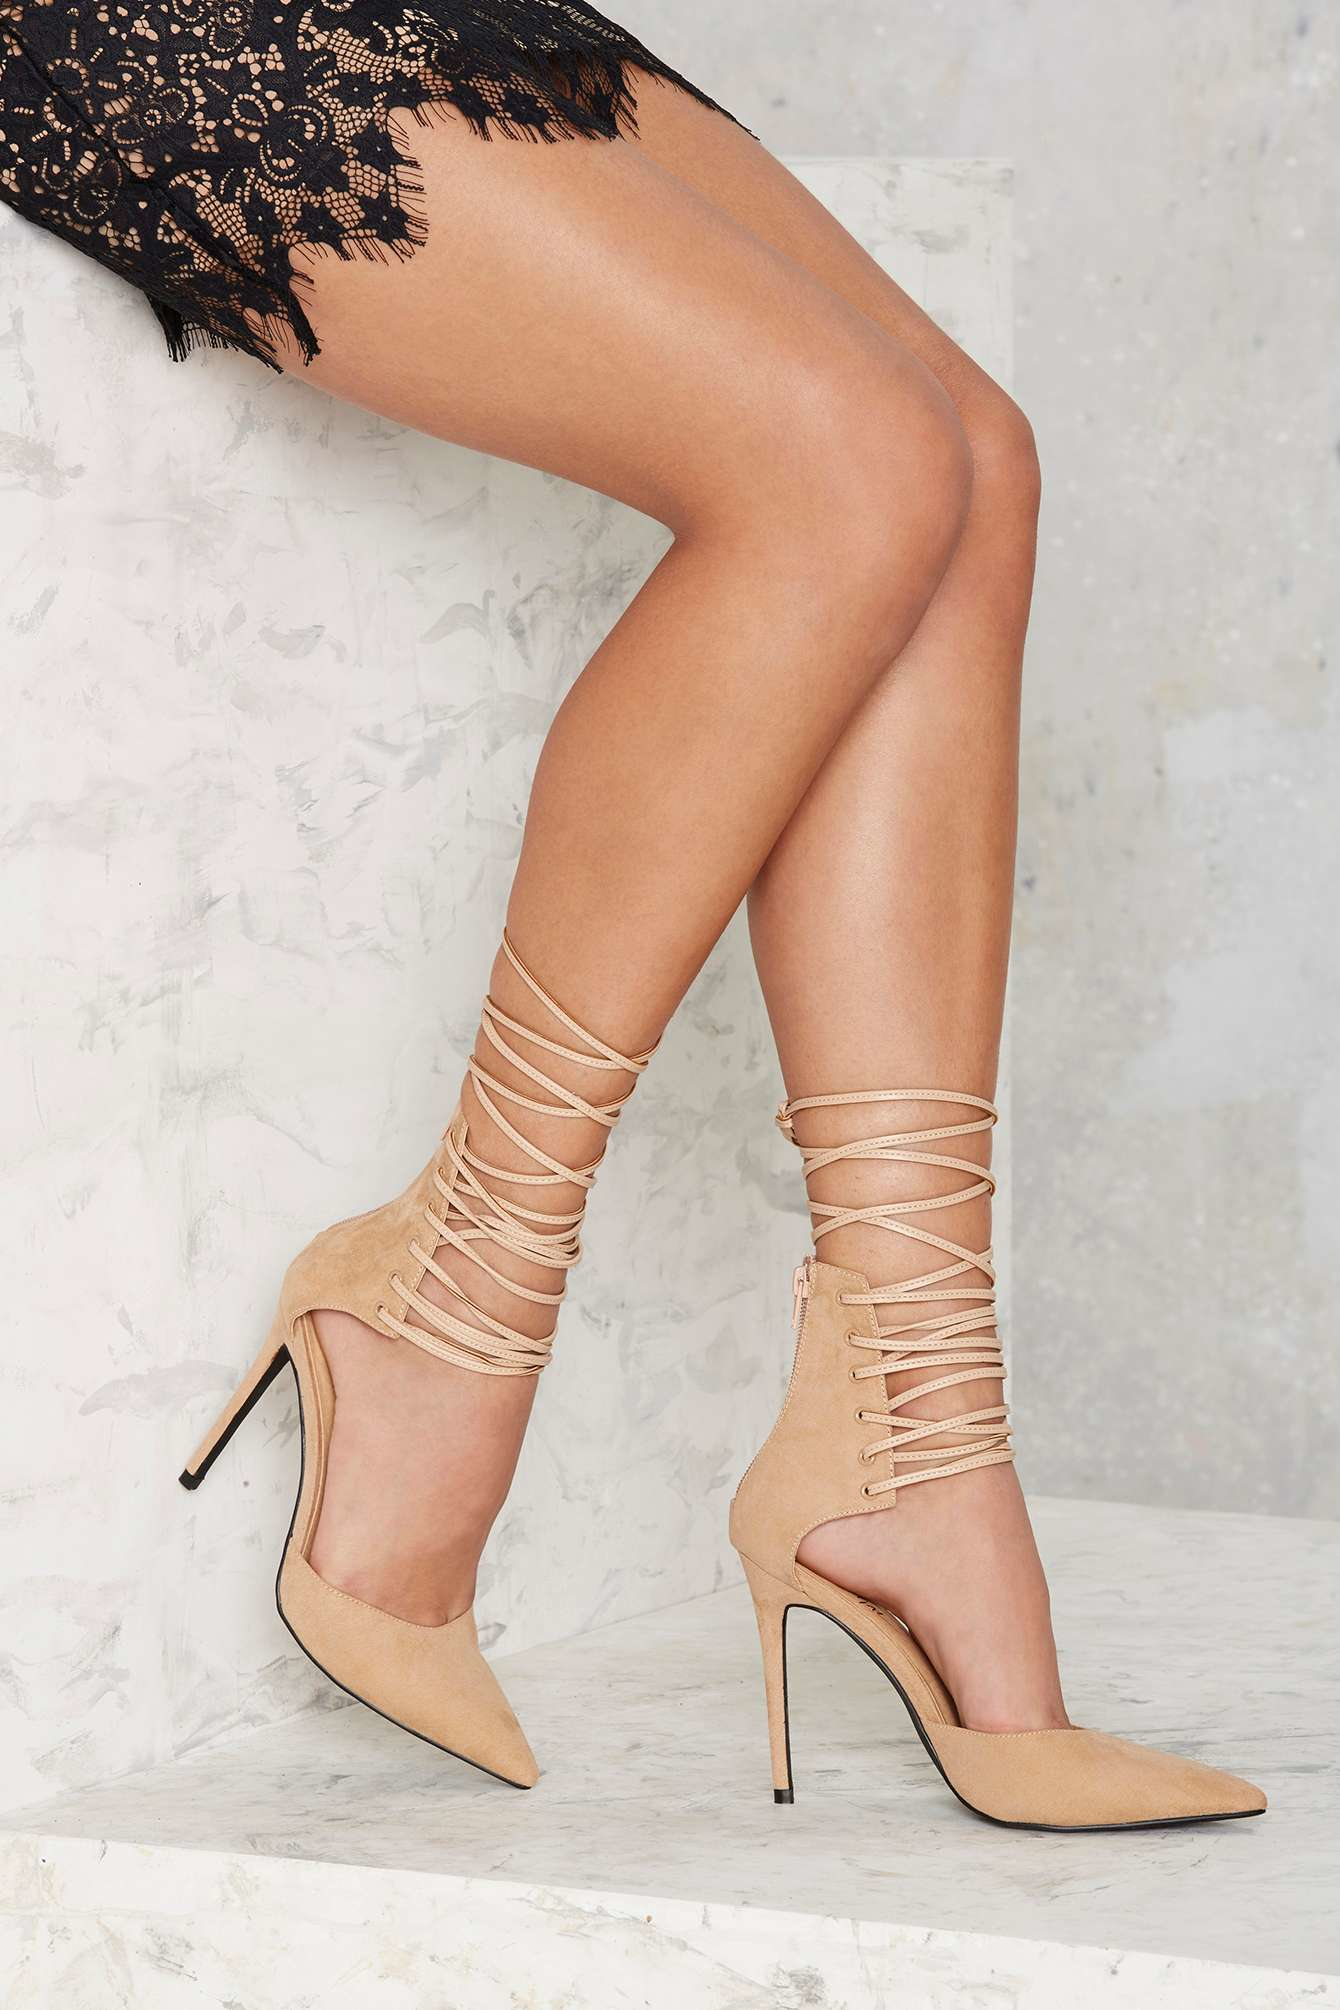 Nasty gal Strap-minded Lace-up Heel - Nude in Natural | Lyst